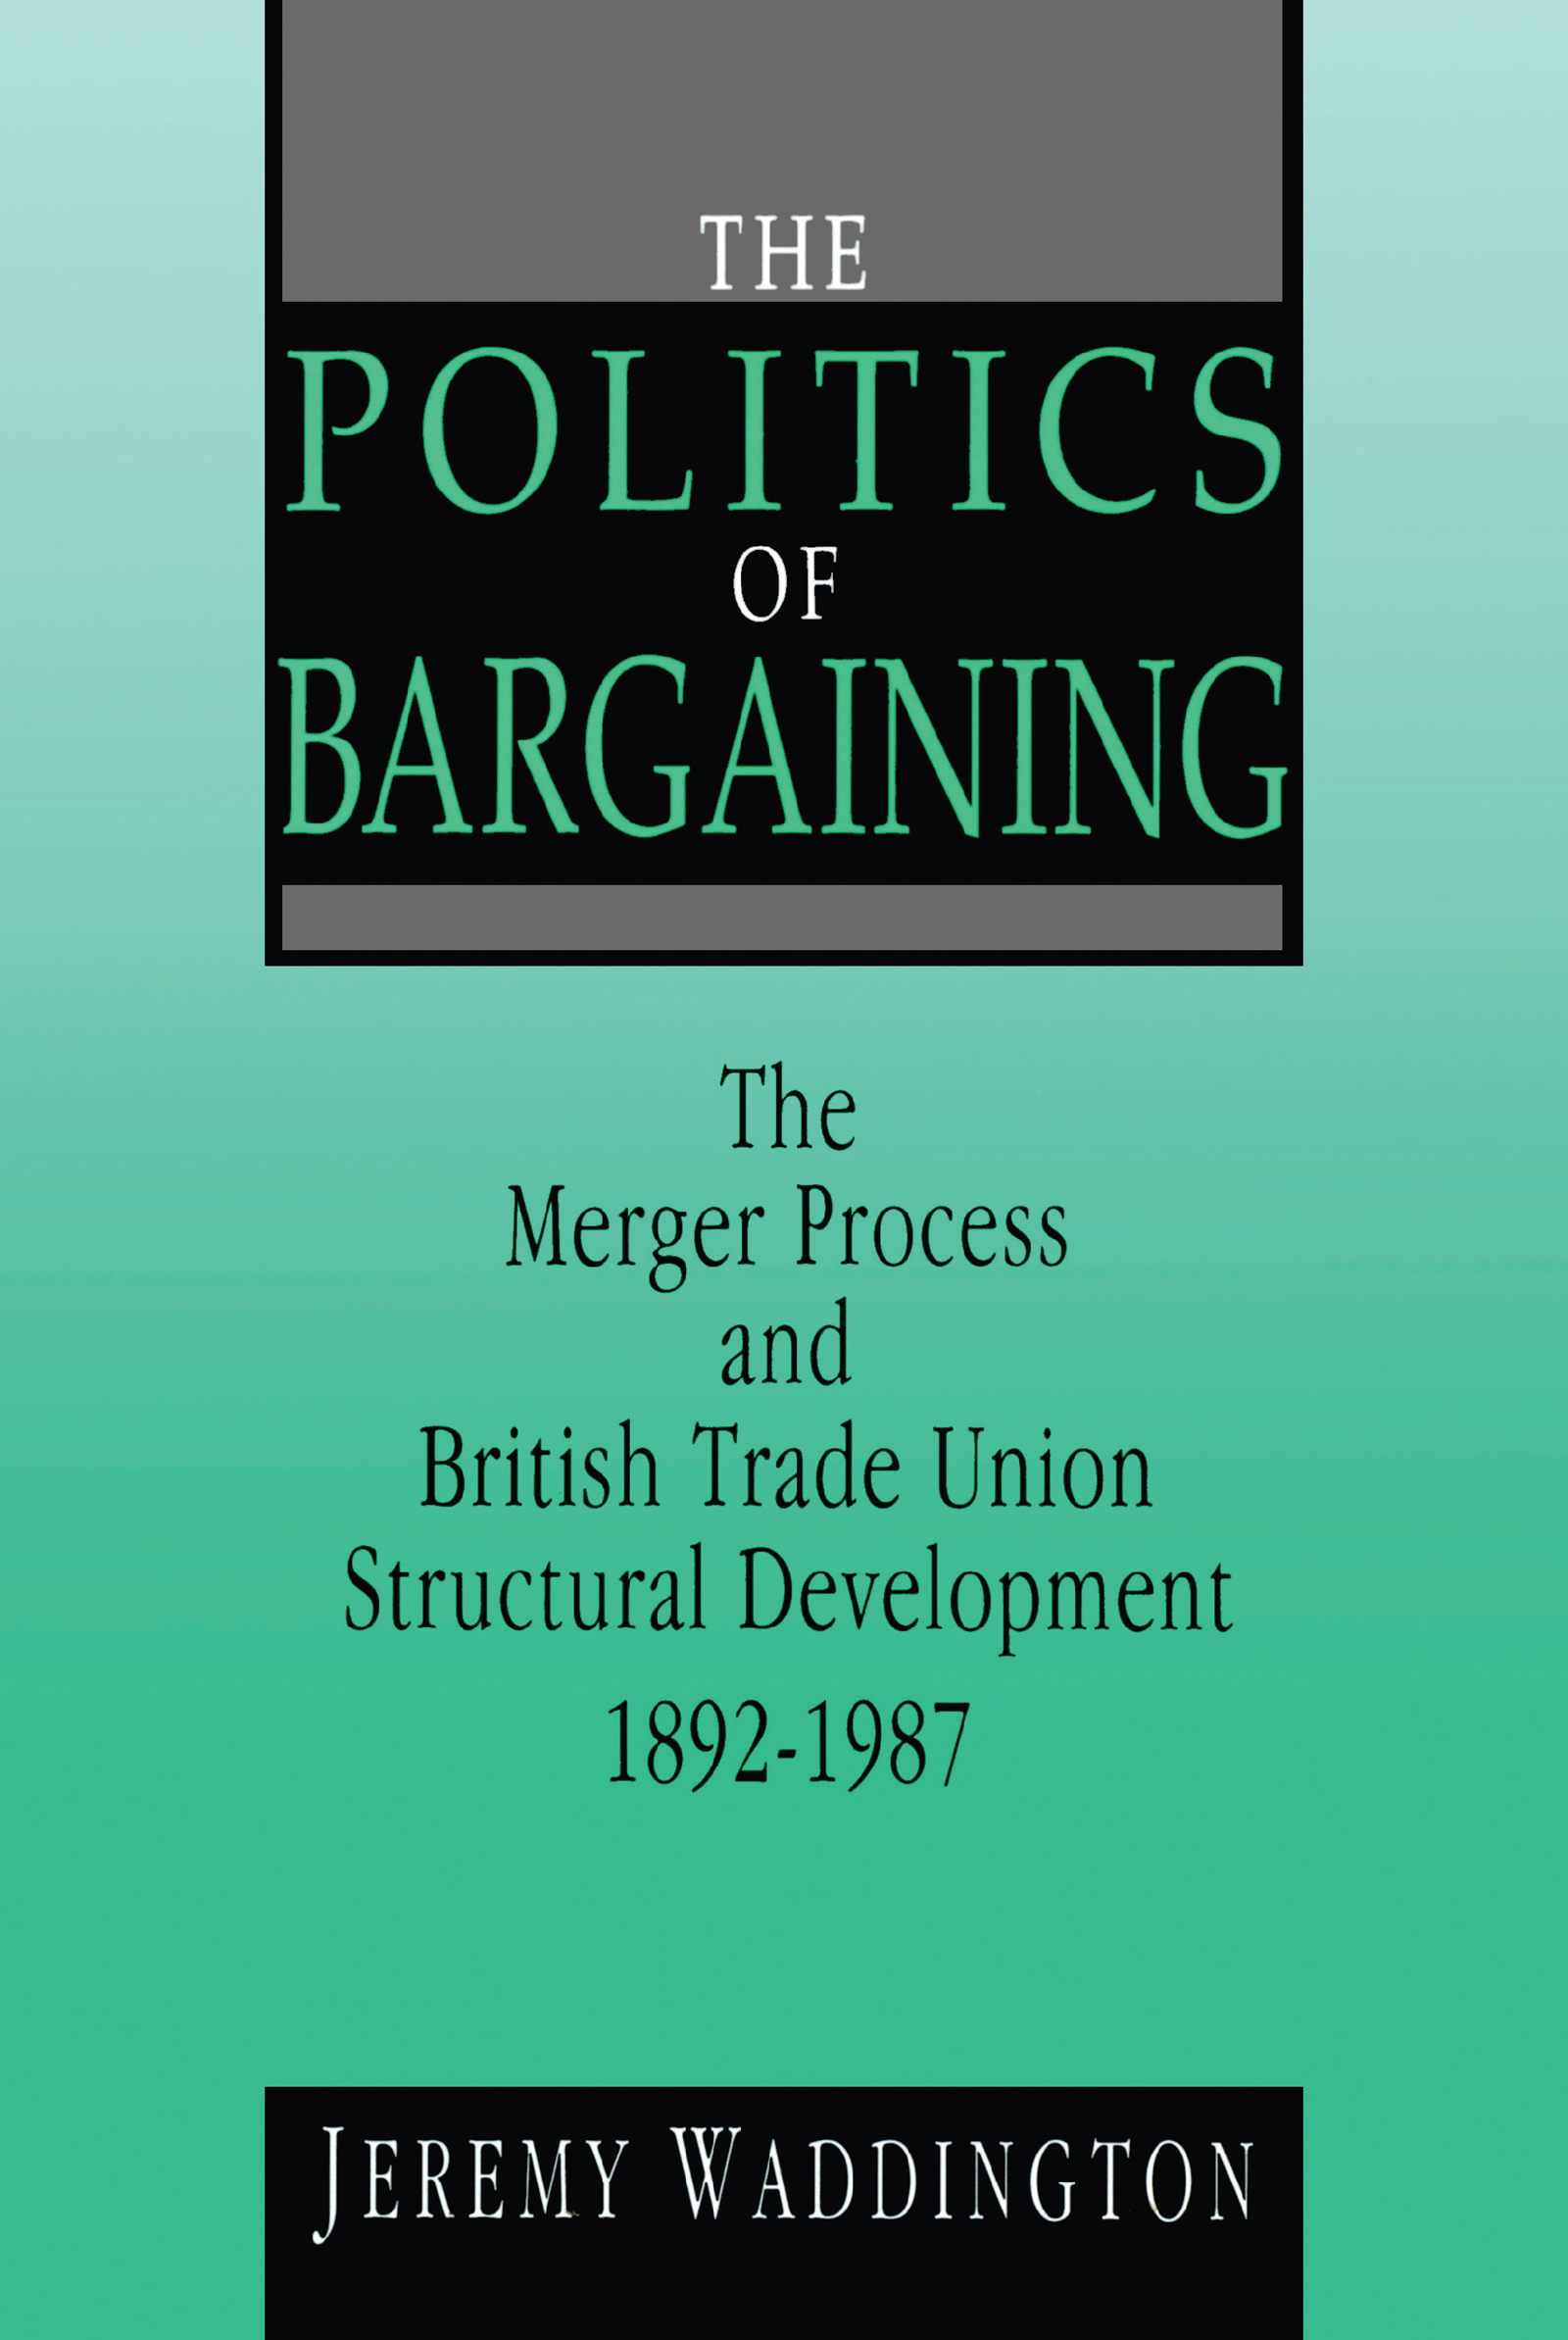 The Politics of Bargaining: Merger Process and British Trade Union Structural Development, 1892-1987 book cover